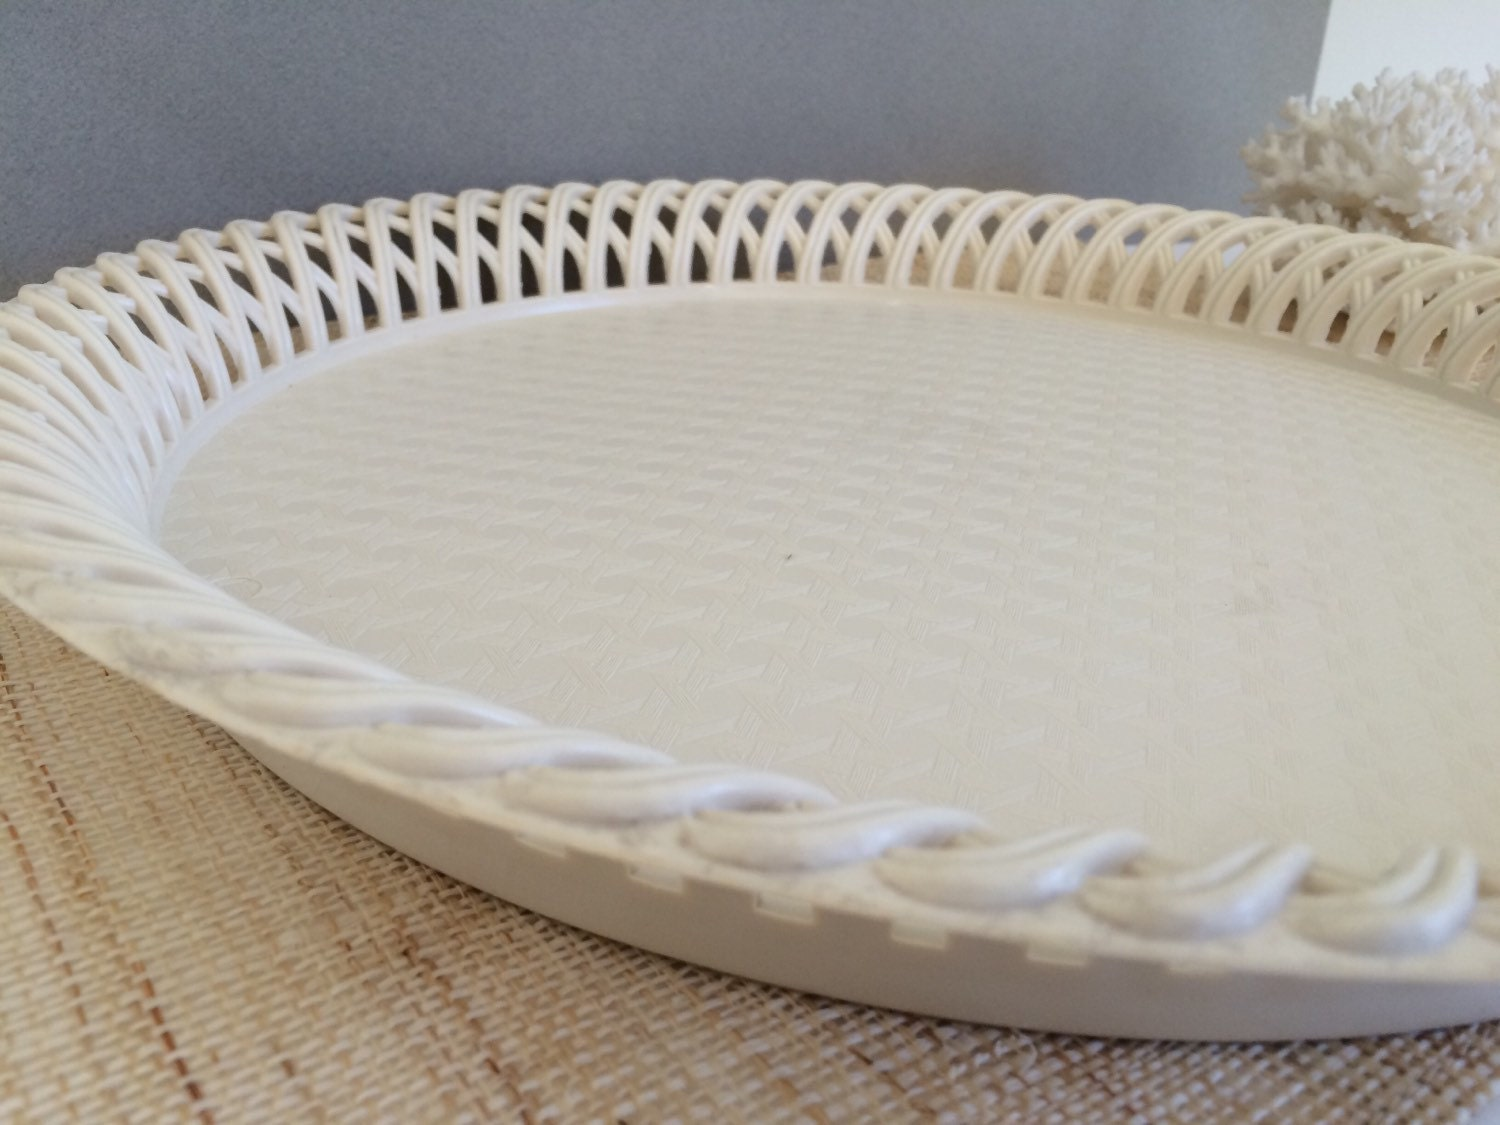 vintage round tray plastic tray large by palmtreesandpelicans. Black Bedroom Furniture Sets. Home Design Ideas